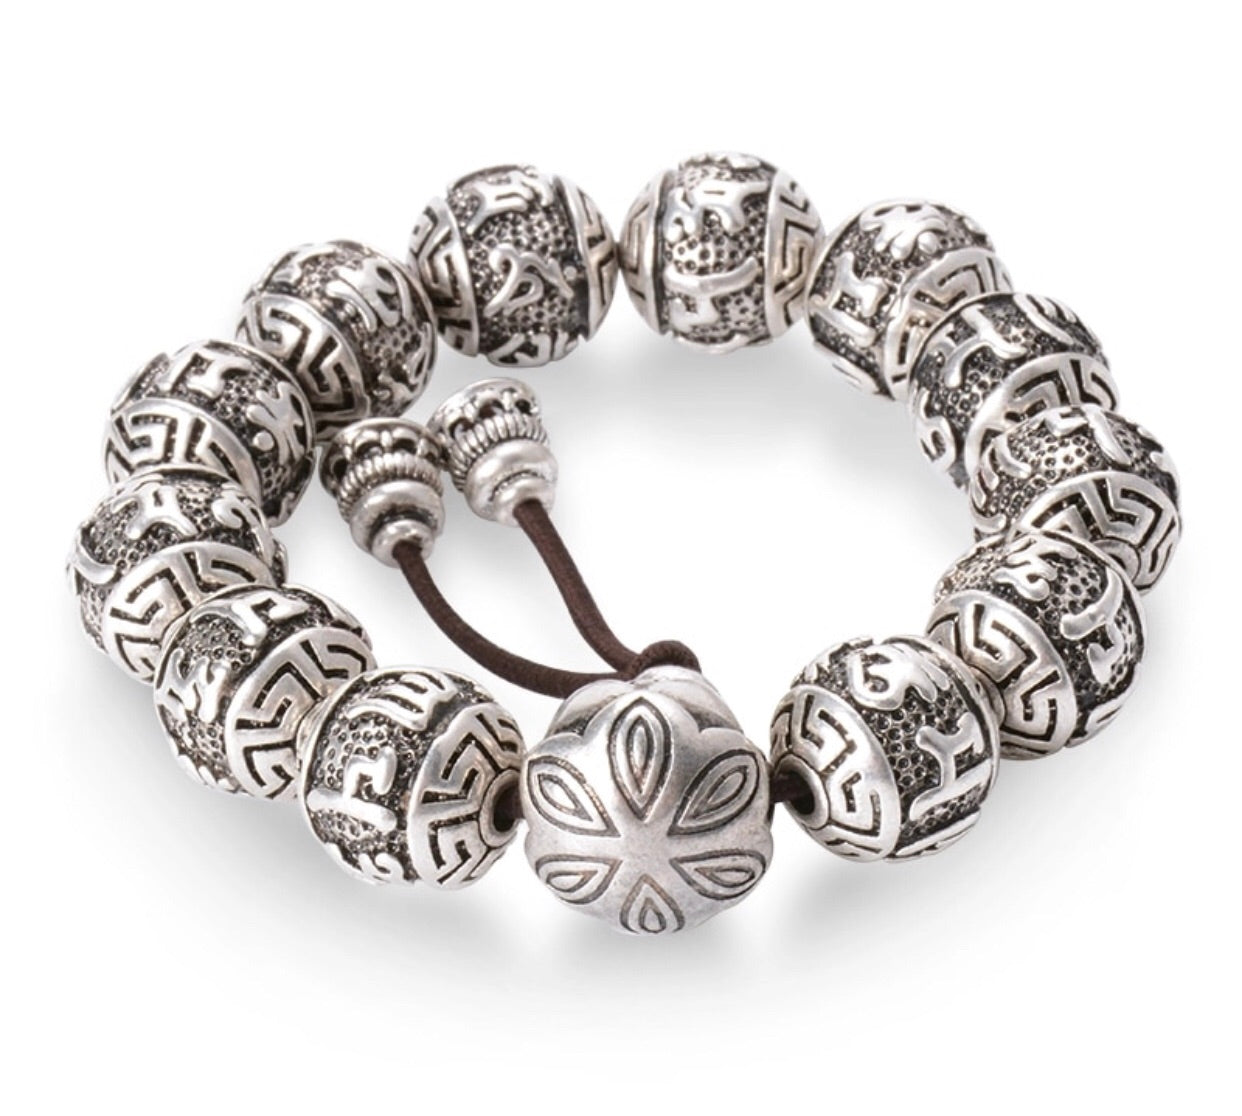 KC CROWN 'ᴄʜᴀɴɢᴇ' Mantra Ball Bracelet